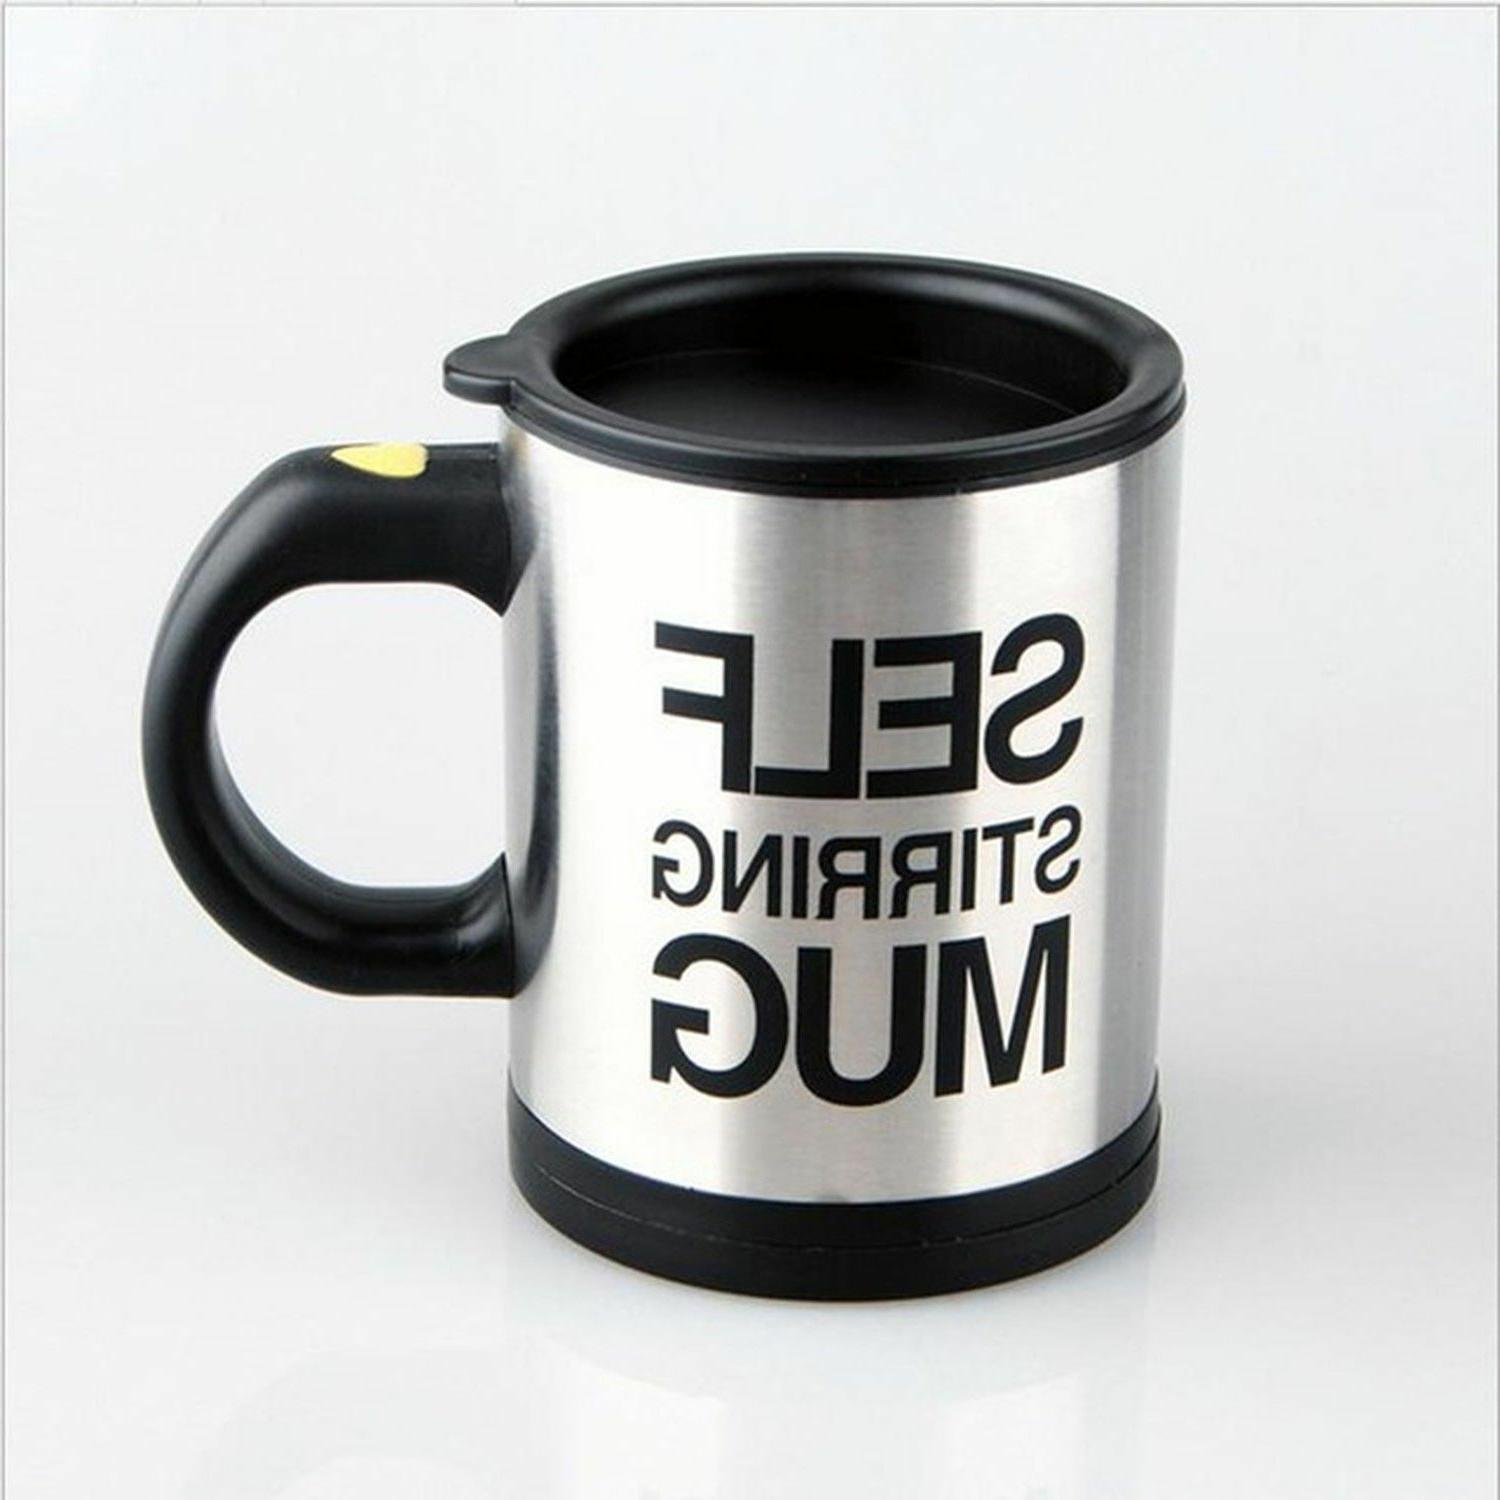 Automatic Mixing Cup Mug Stainless